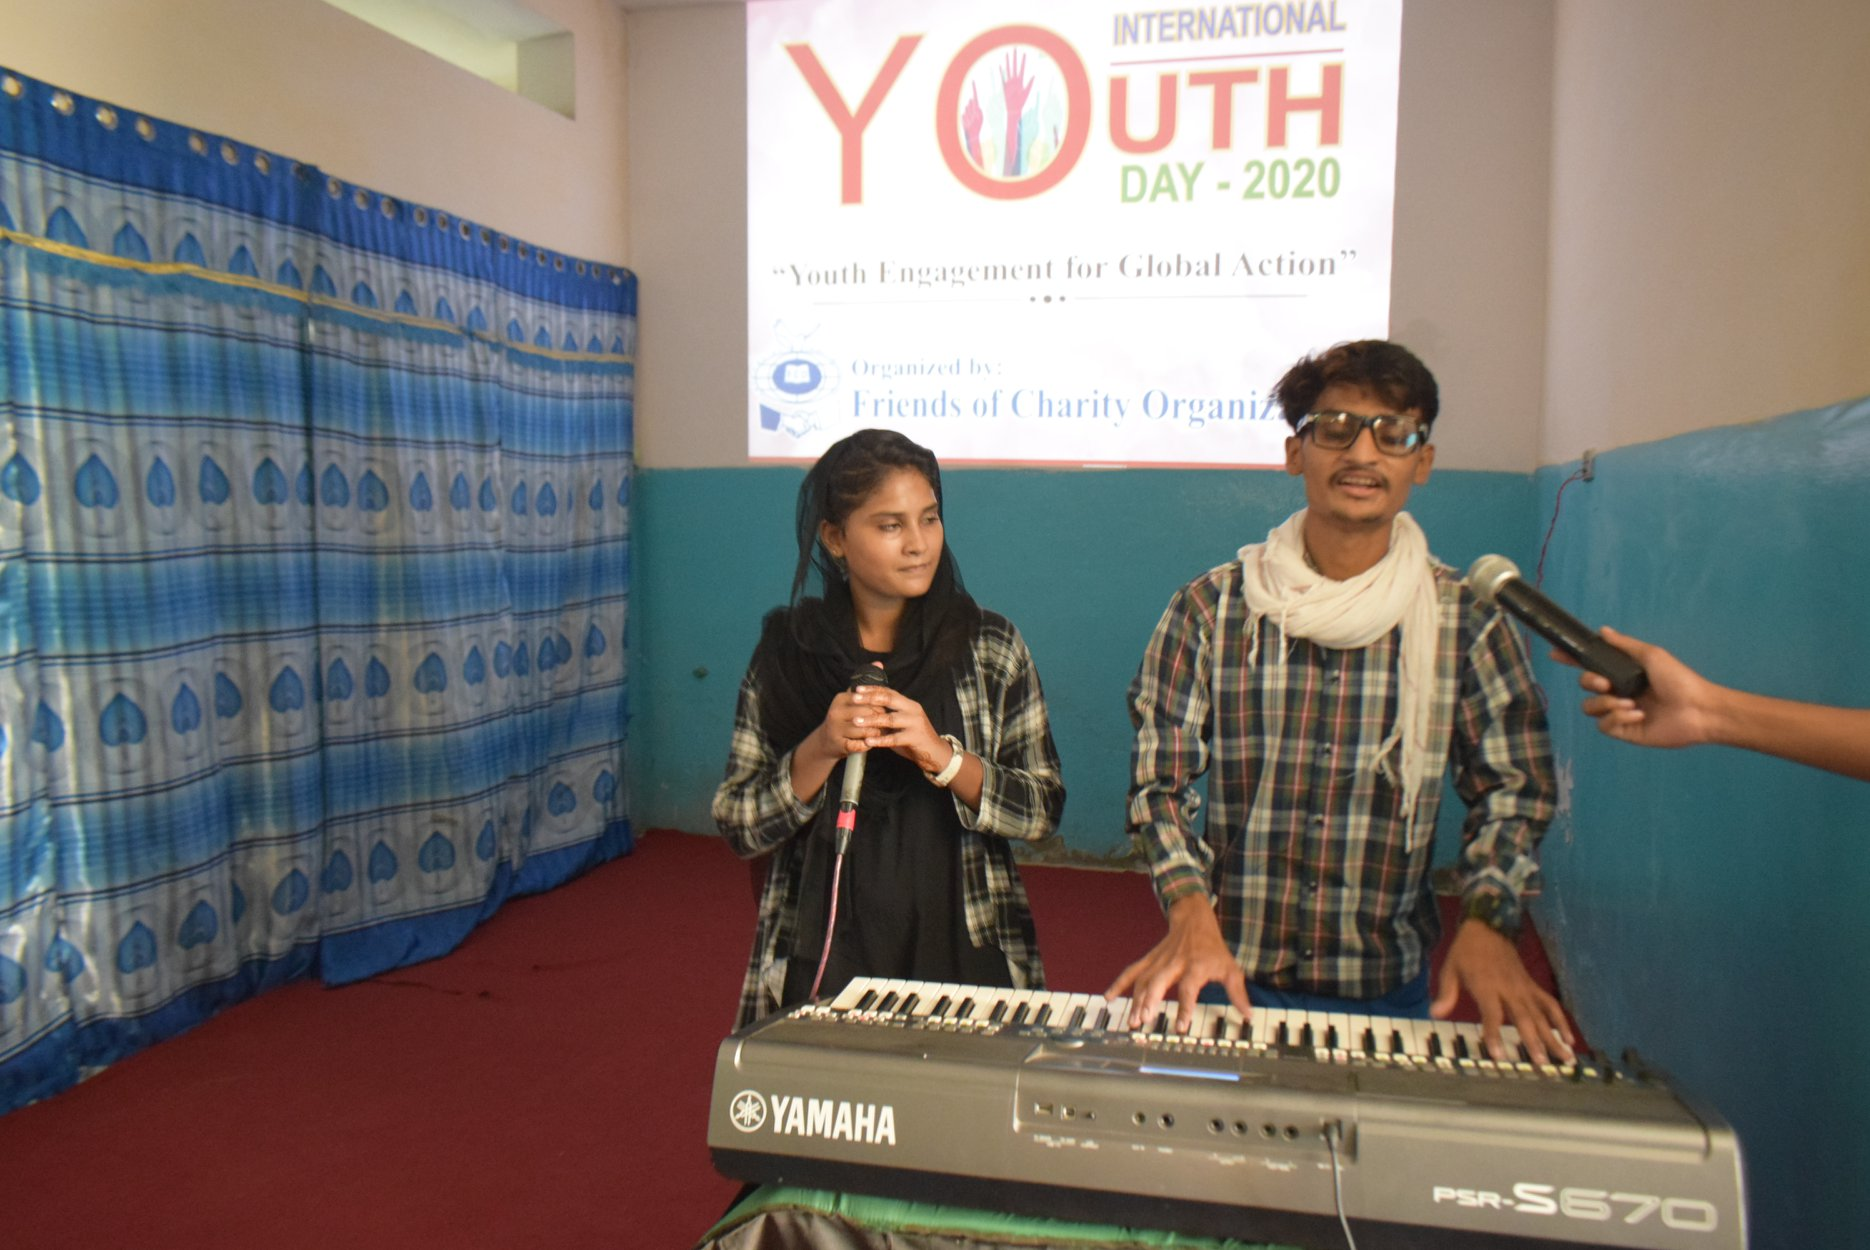 Youth_Day-4